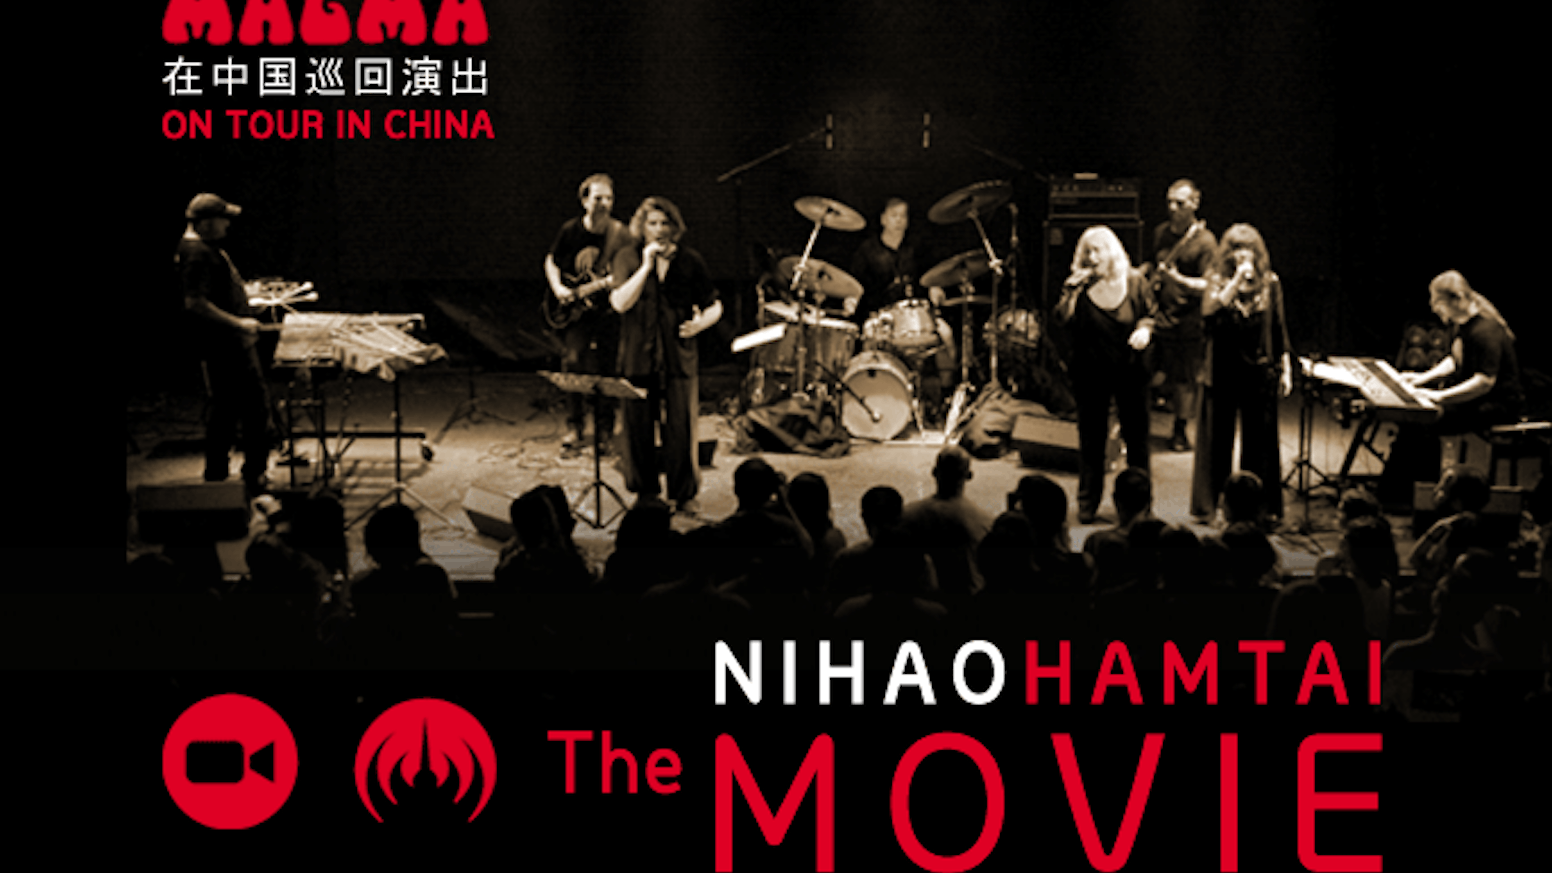 Movie about Magma's tour in China. Film sur la tournée de Magma en Chine. 在中国巡回演出 - 电影